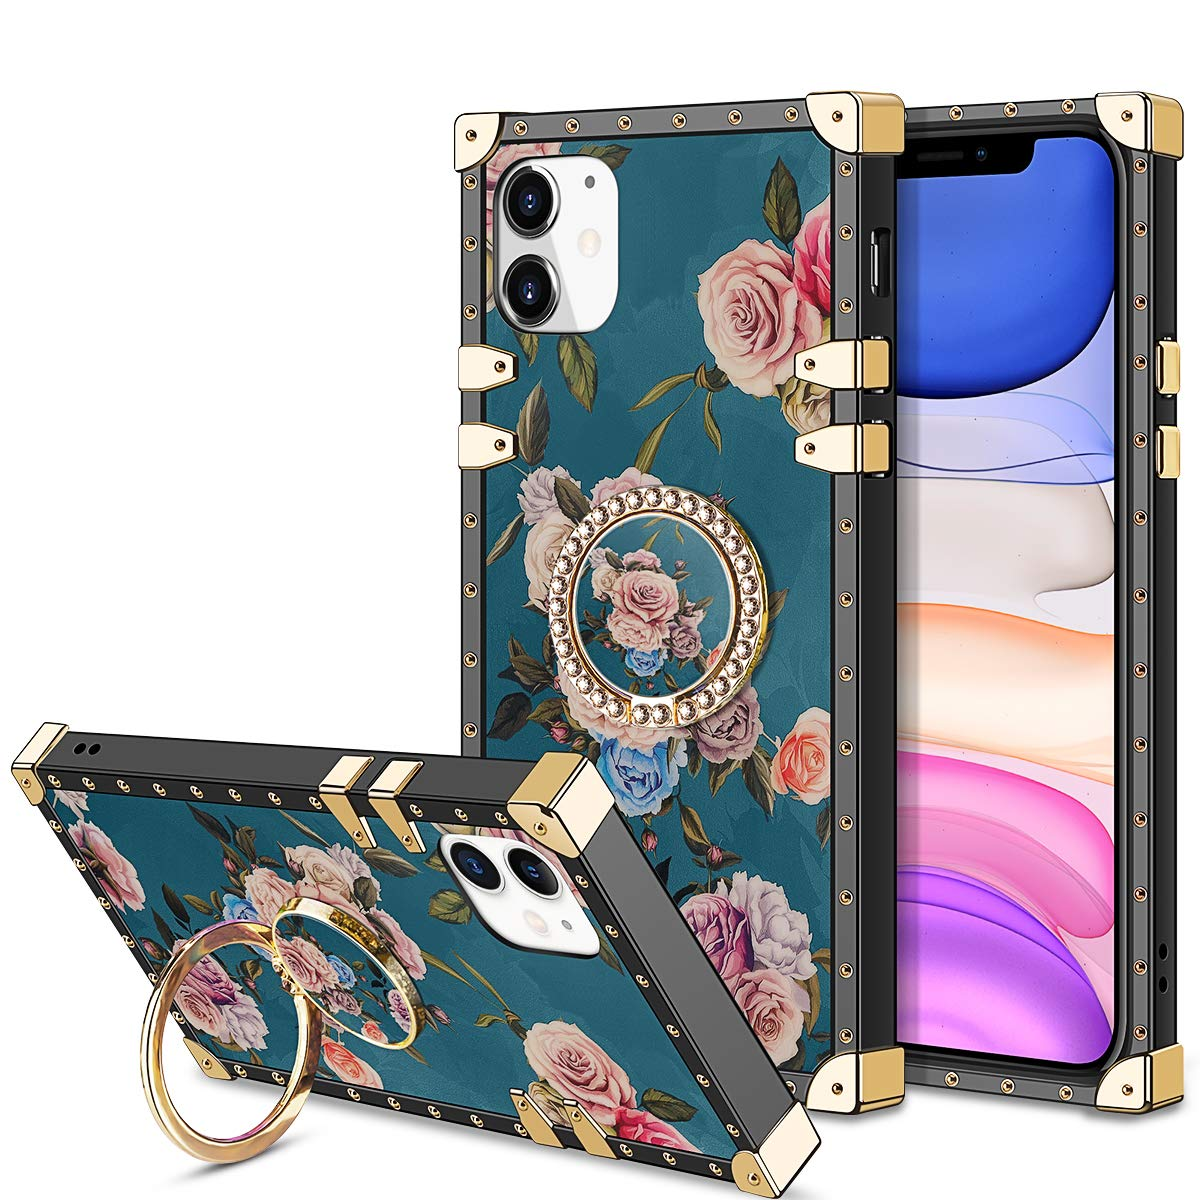 HoneyAKE Case for iPhone 11 Case with 360 Degree Rotation Ring Stand Holder Floral Flower Elegant Soft TPU Reinforced Corner Shock-Absorbing Protective for iPhone 11 6.1 inches, Peony